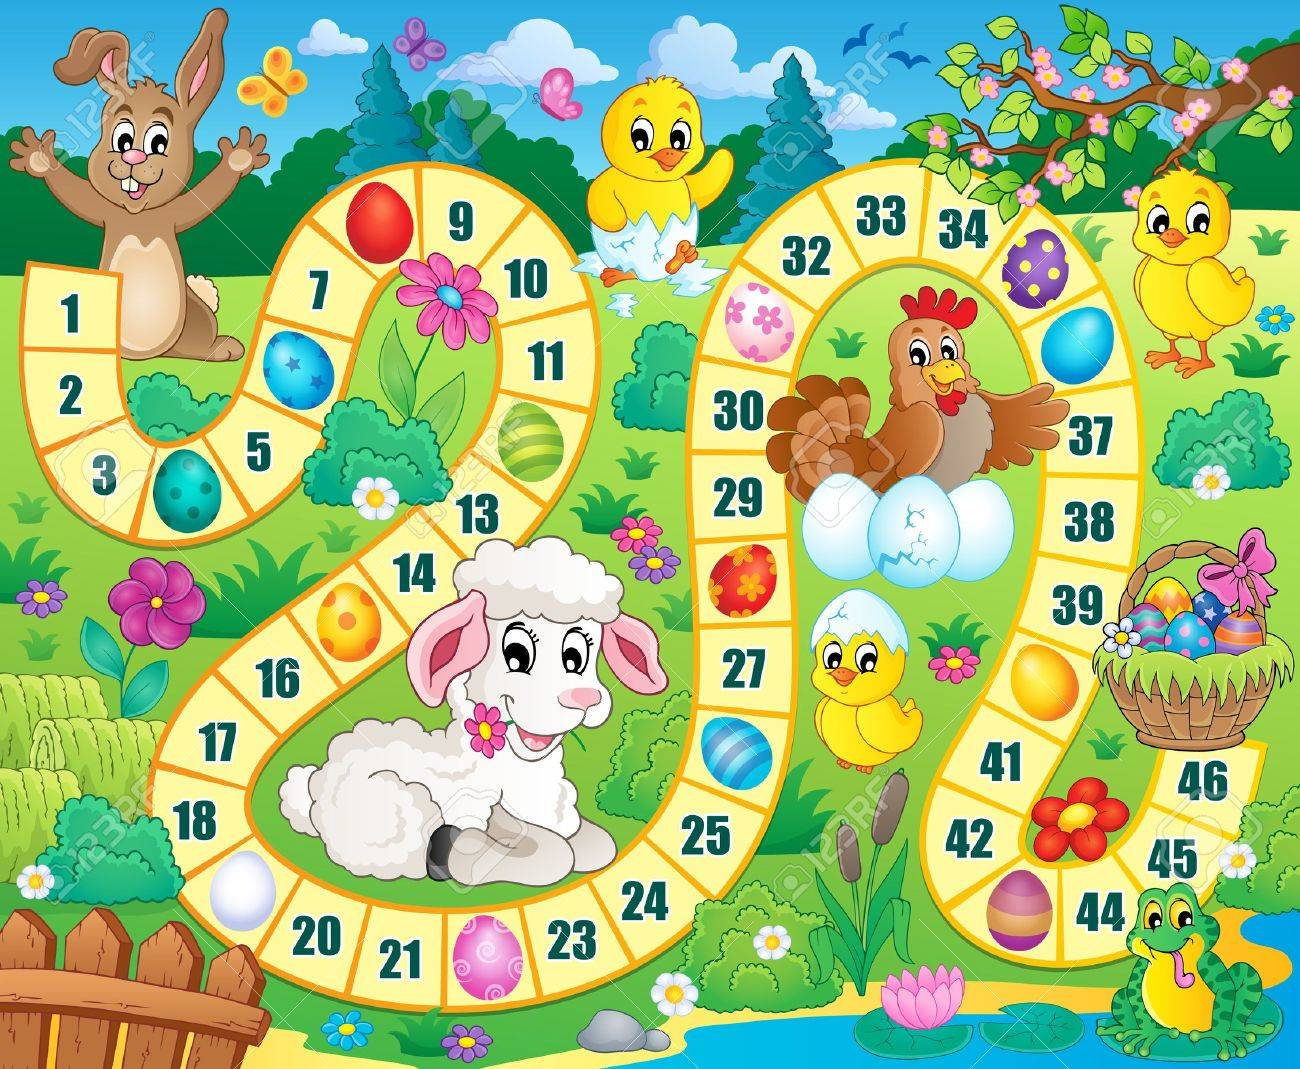 Board Game Image With Easter Theme. Royalty Free Cliparts, Vectors ...